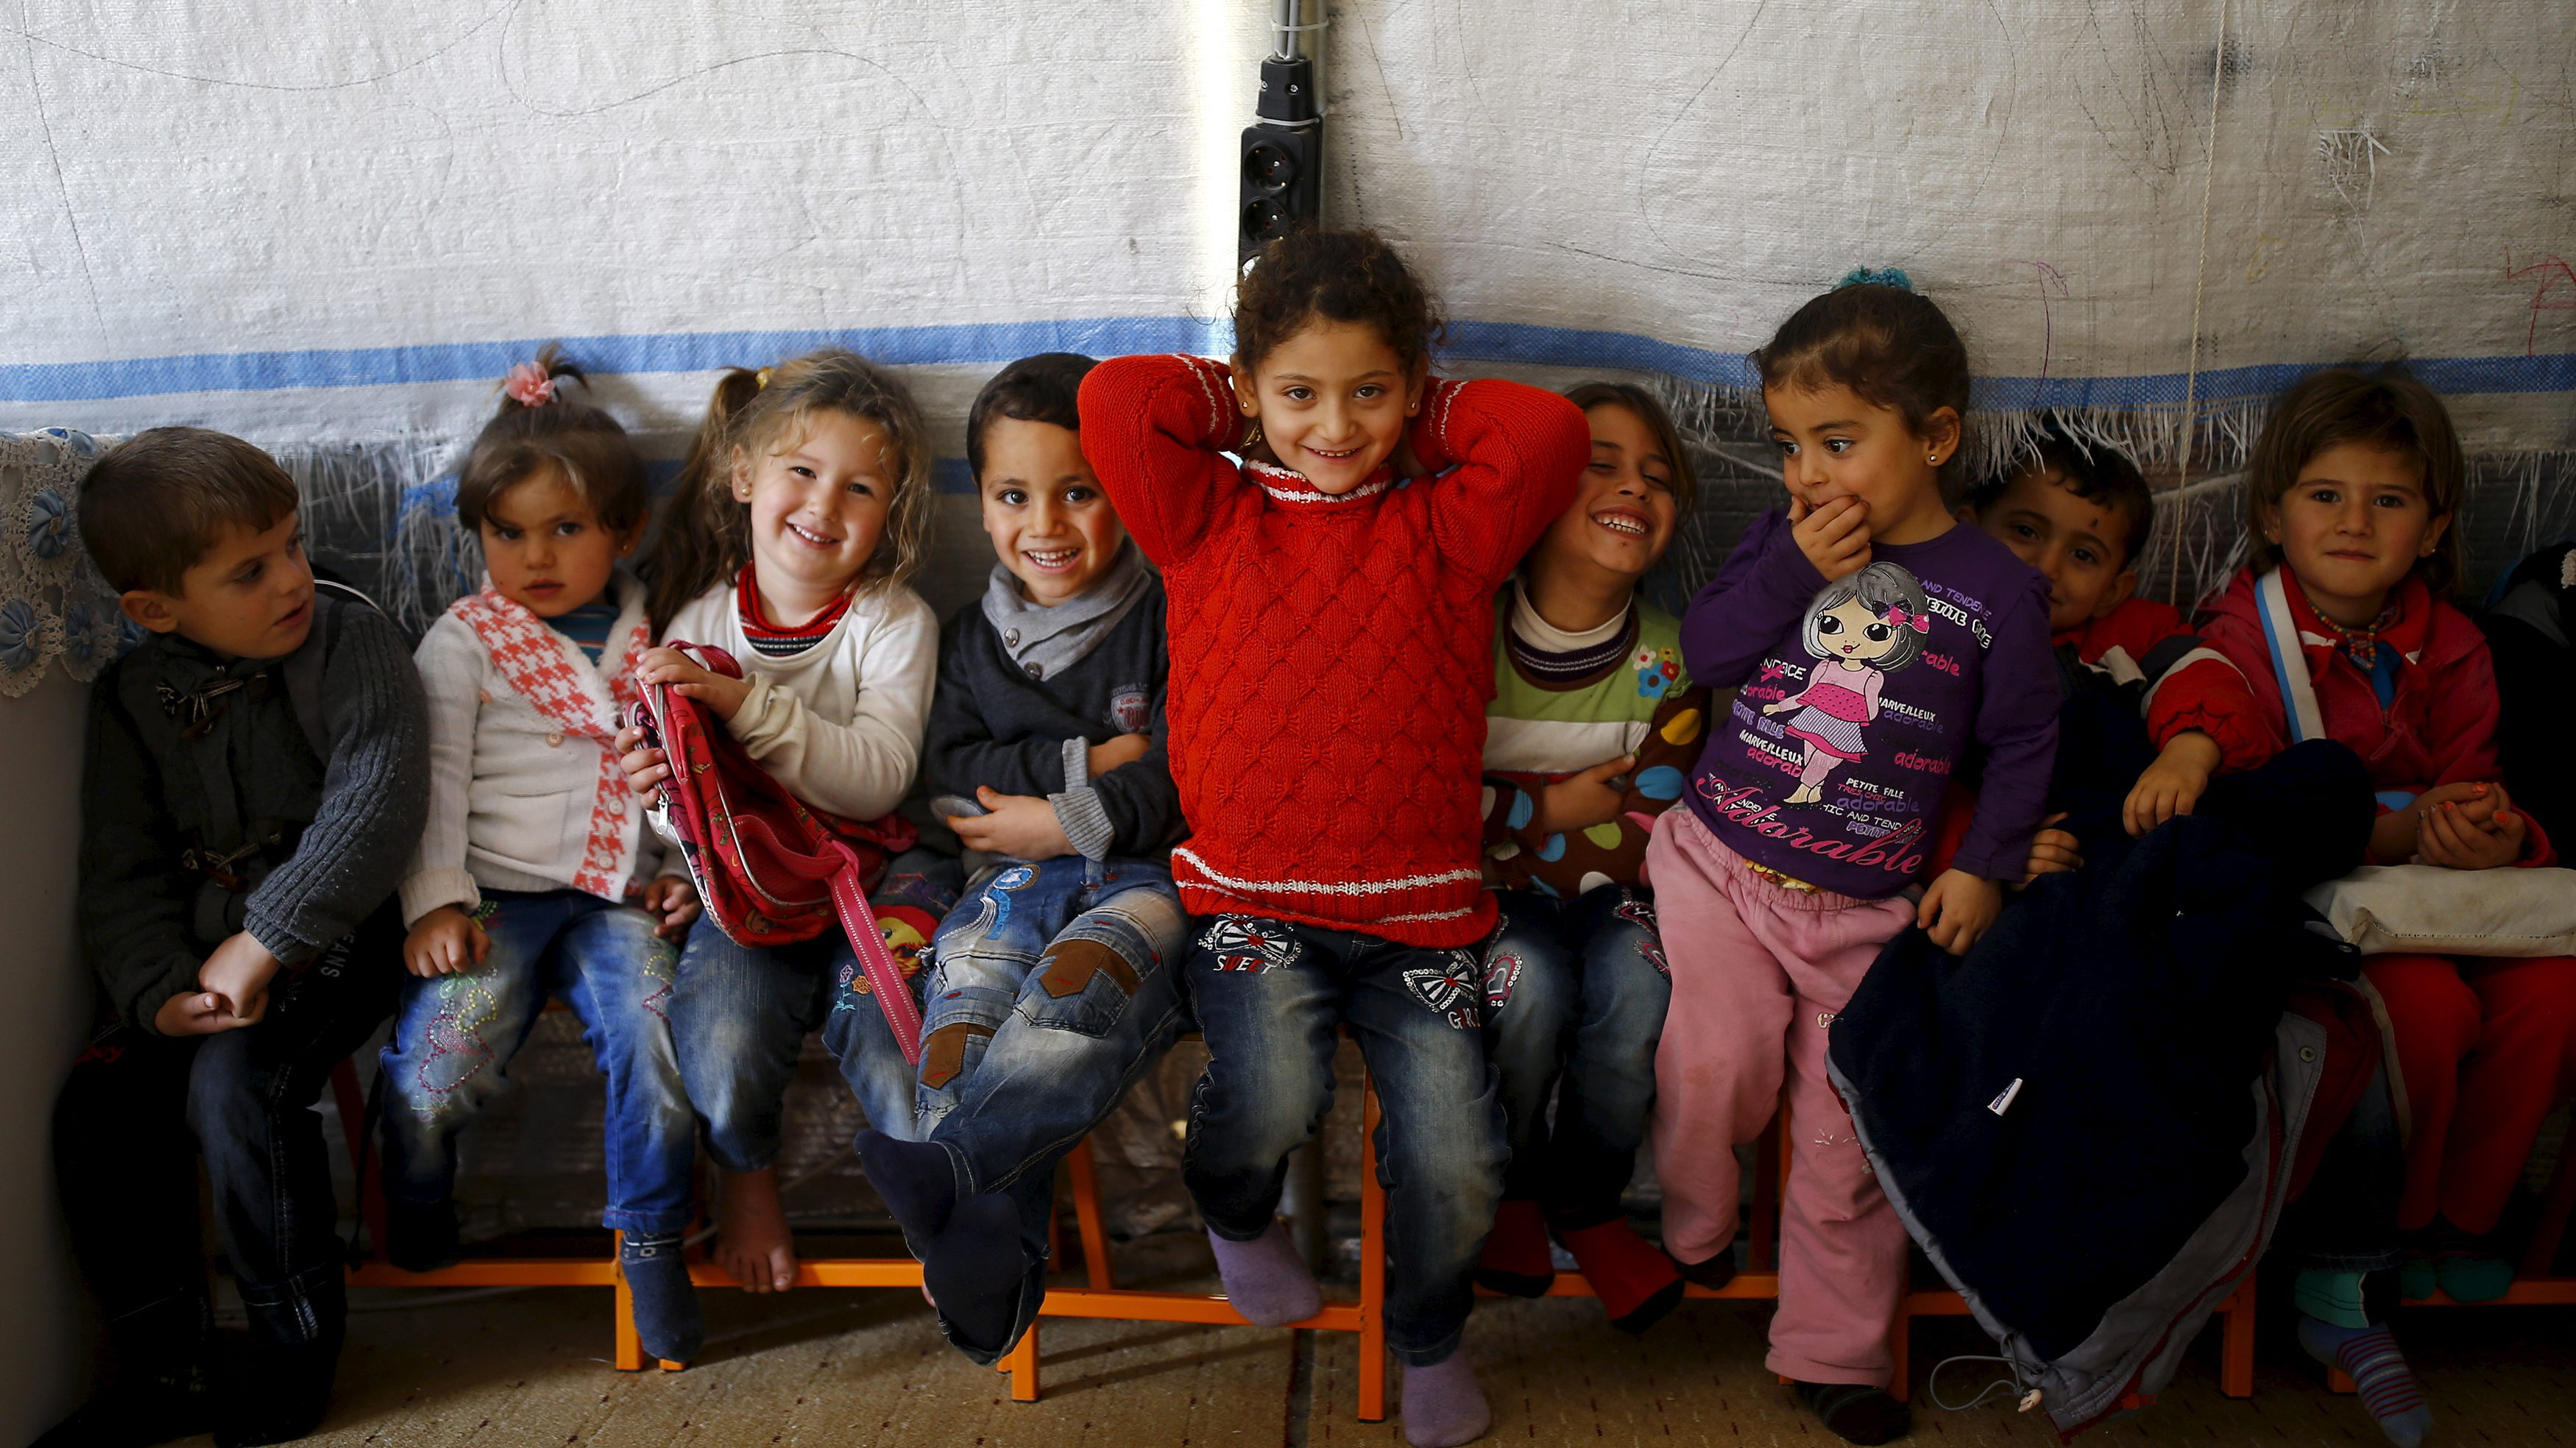 Syrian refugee girl Ele Cundi, 5, poses as she sits with her friends in a kindergarten at Midyat refugee camp in Mardin province, Turkey, December 14, 2015. Syria's conflict has left hundreds of thousands dead, pushed millions more into exile, and had a profound effect on children who lost their homes or got caught up in the bloodletting. The drawings of young refugees living in Turkey show their memories of home and hopes for its future. The pictures also point to the mental scars borne by 2.3 million Syrian refugees living in Turkey, more than half of them children.